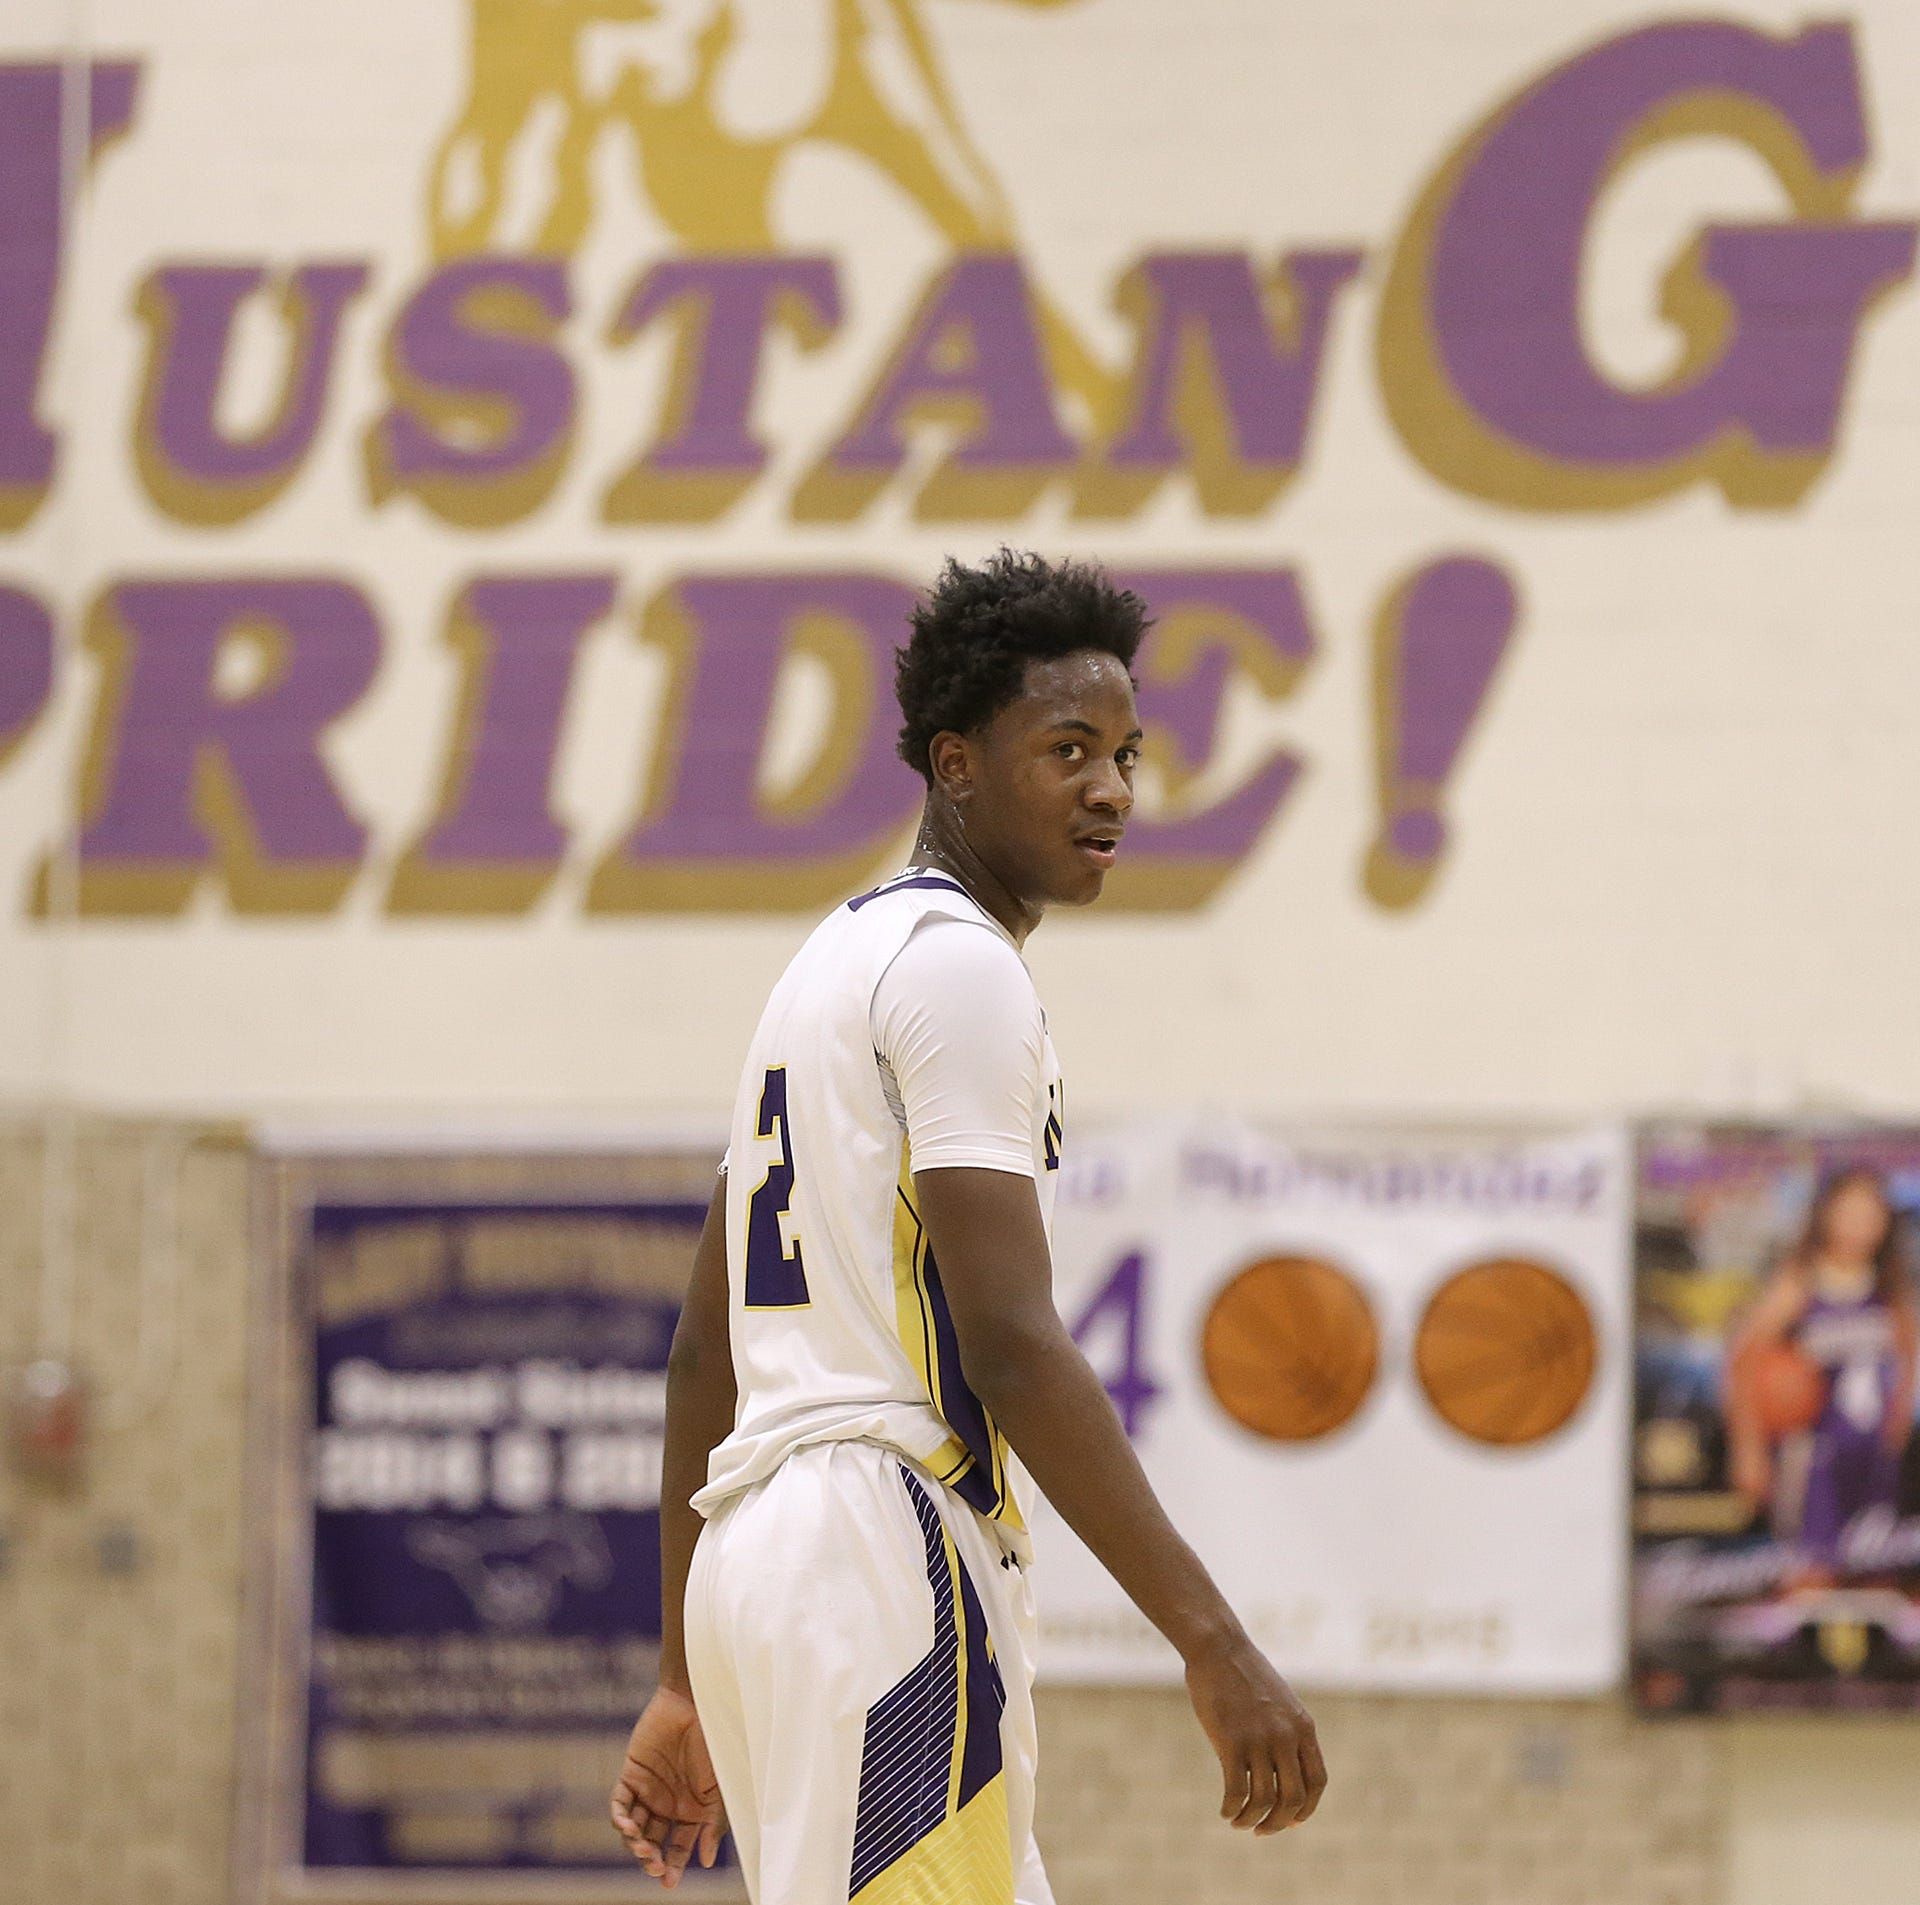 Burges basketball defeated Coronado Tuesday night at Burges High School 73-56.